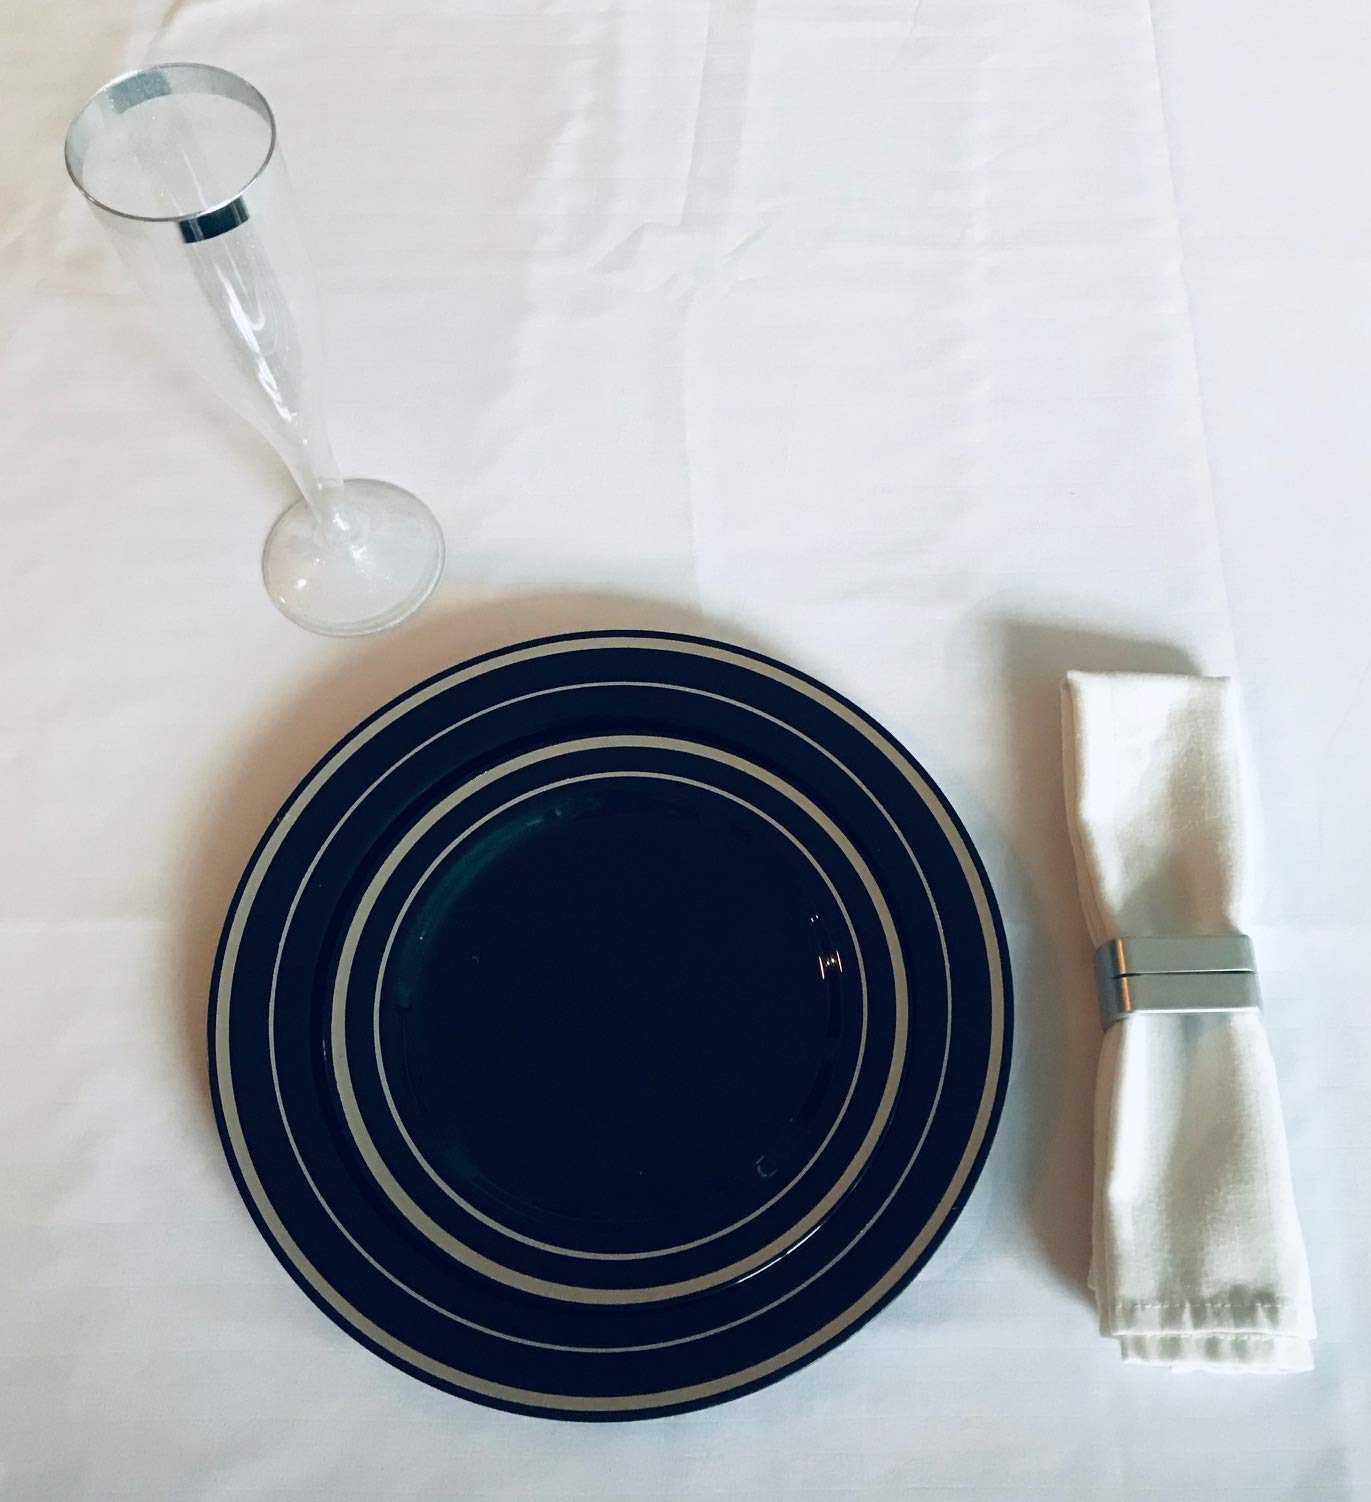 100 Piece Plastic Plates Black & Silver | 50 Guest | 50 Dinner Plates, 50 Dessert Plates by You're Invited (Image #4)